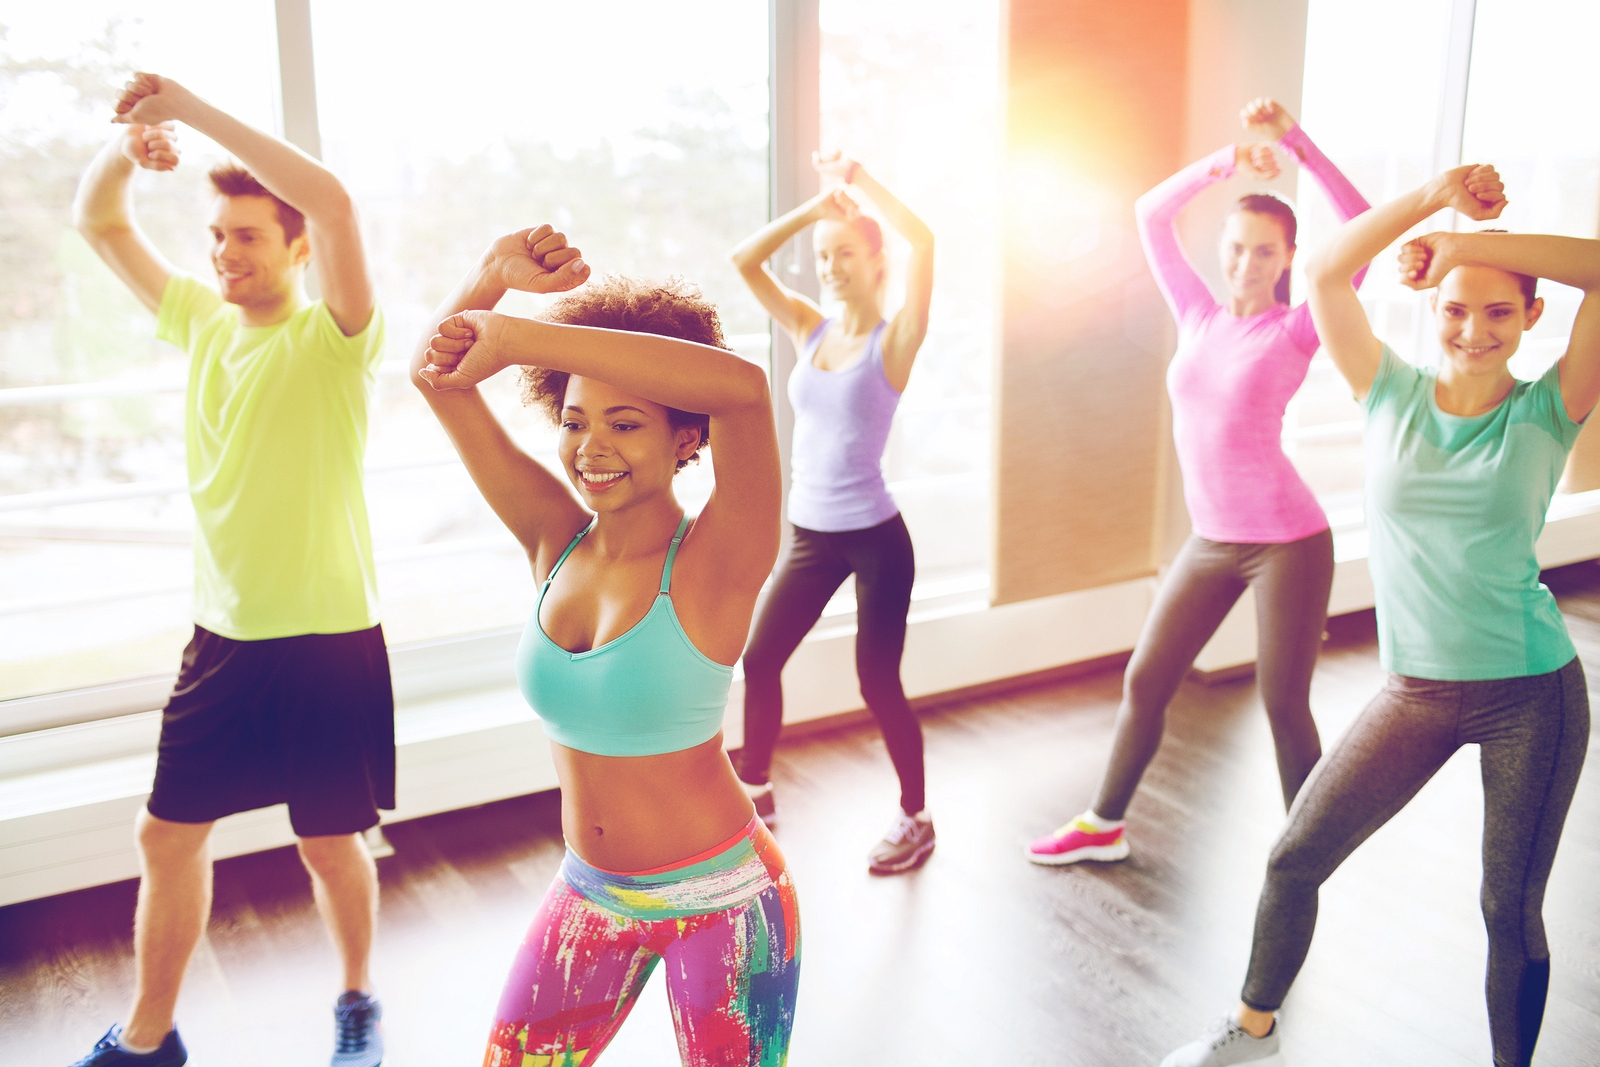 Holmes Place | dance class zumba women men smile gym fitness